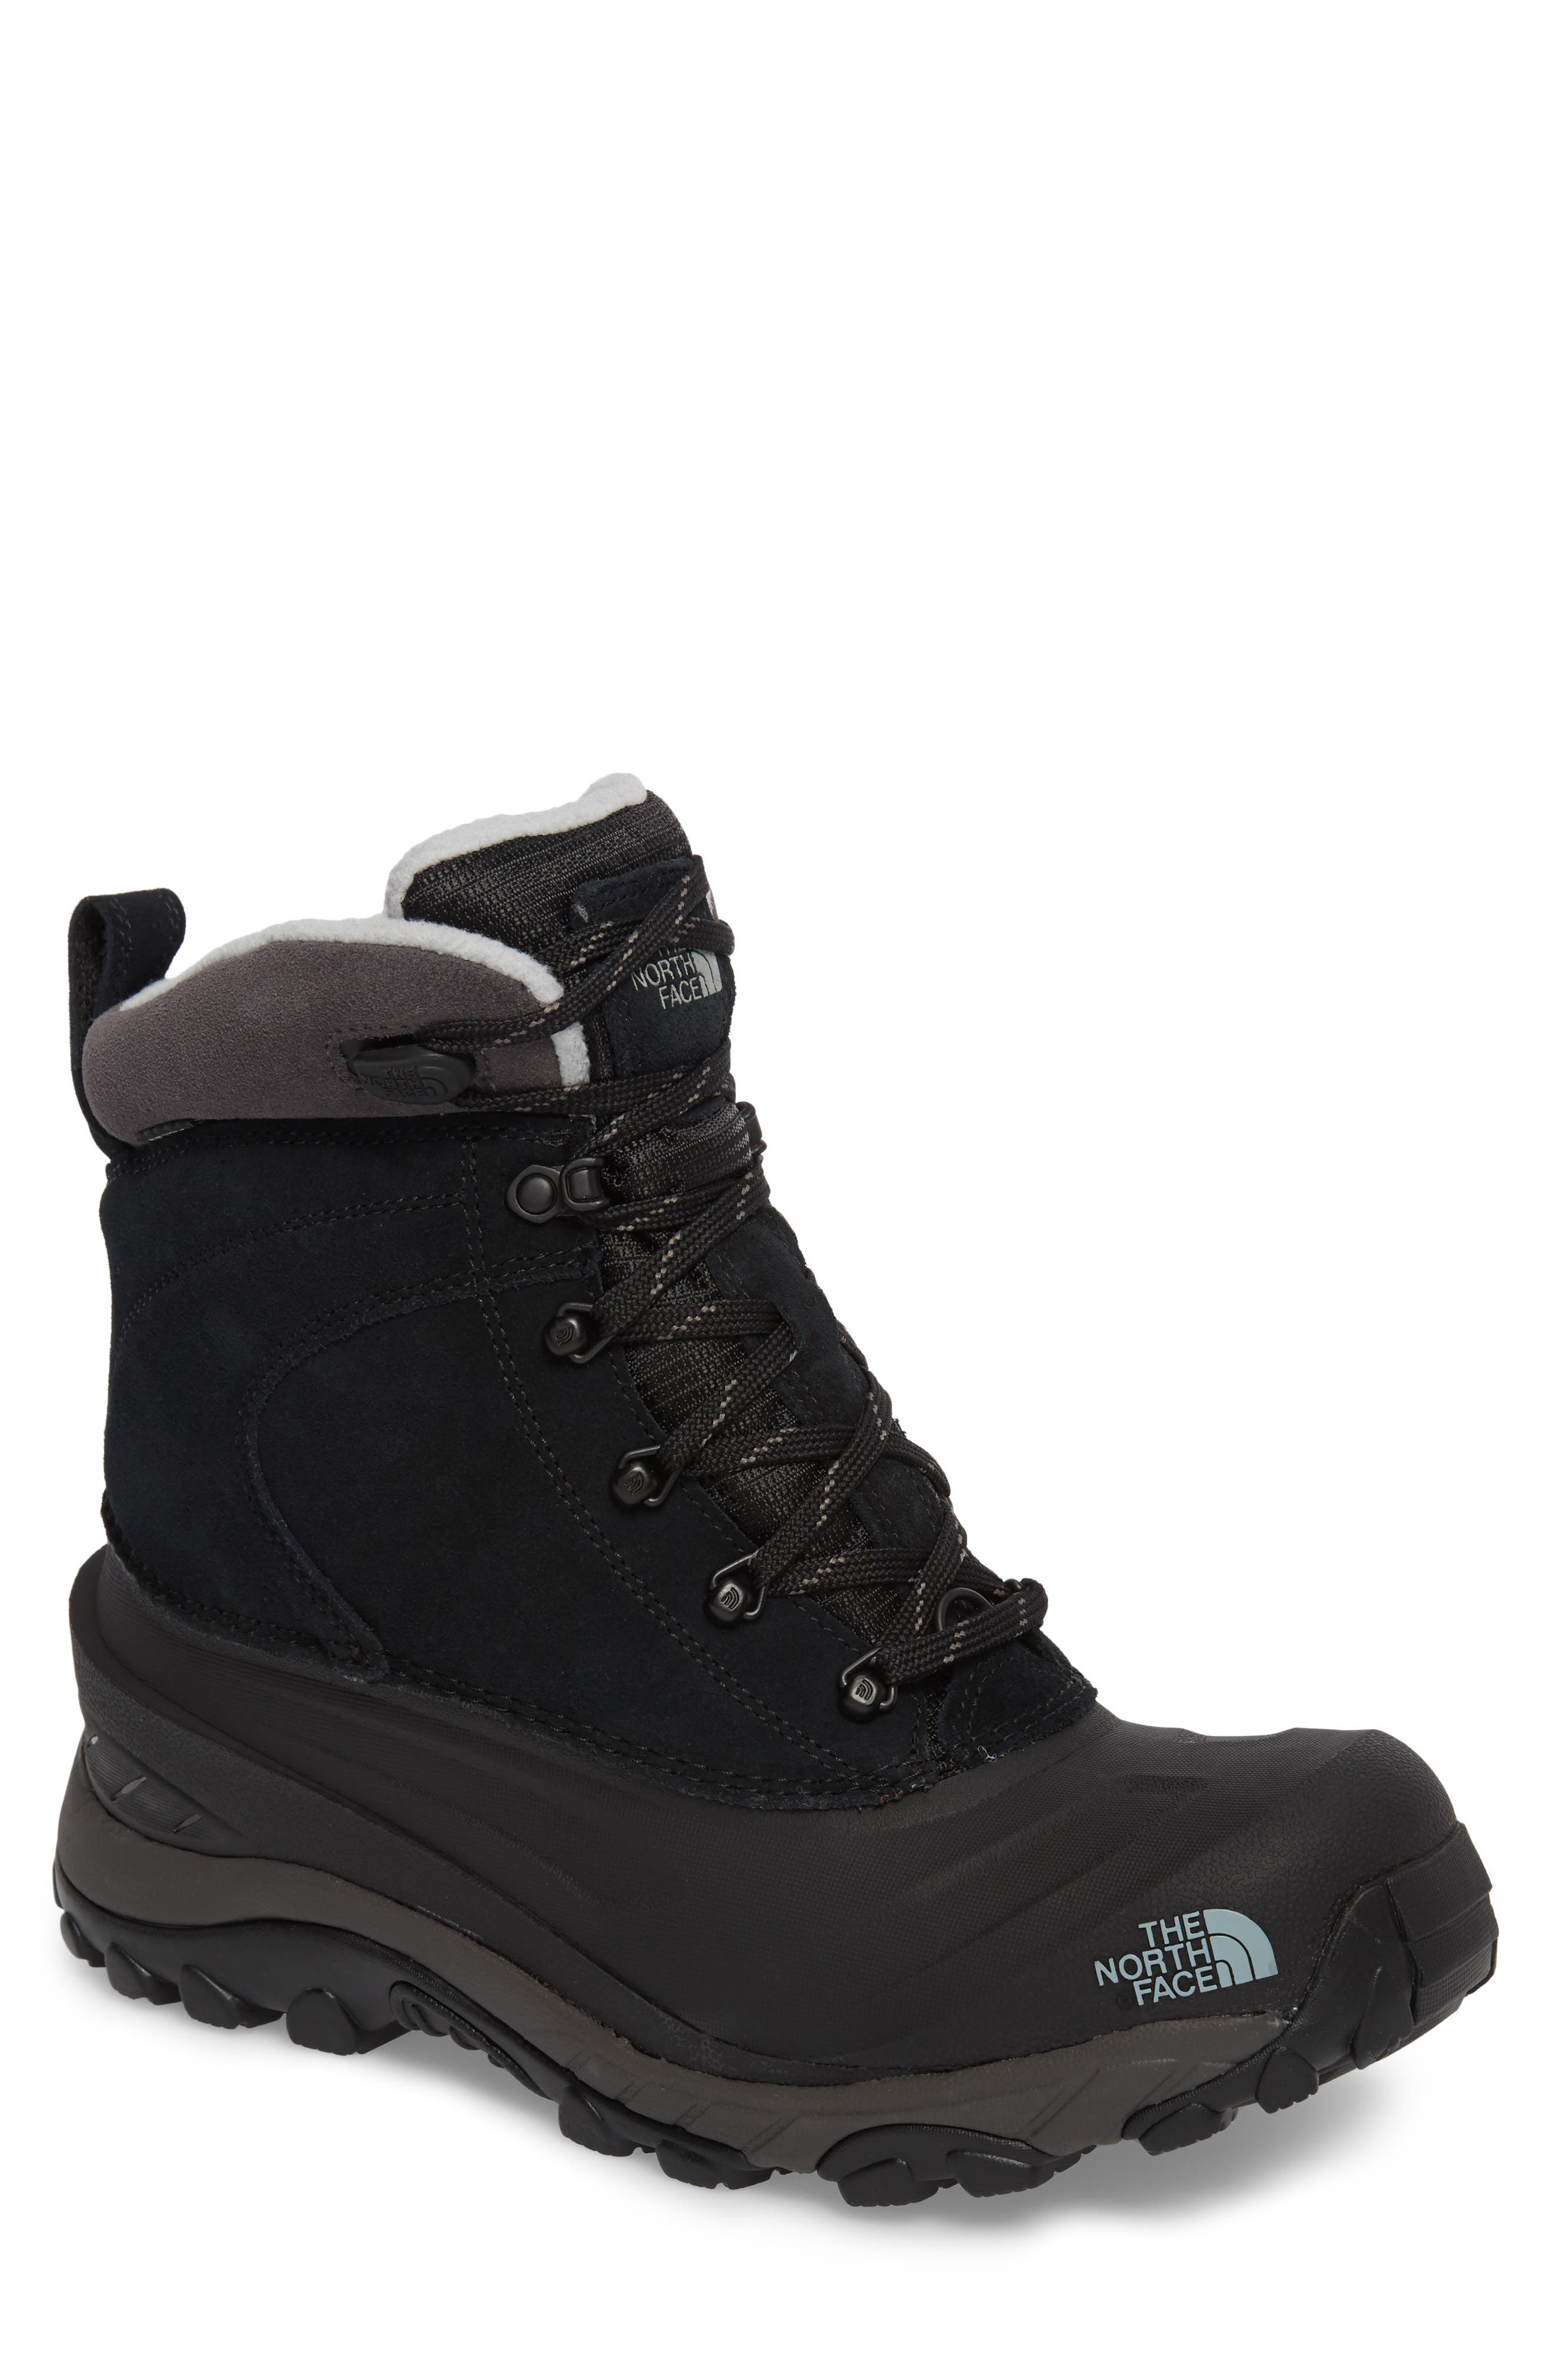 Main Image - The North Face Chilkat III Waterproof Insulated Boot (Men)